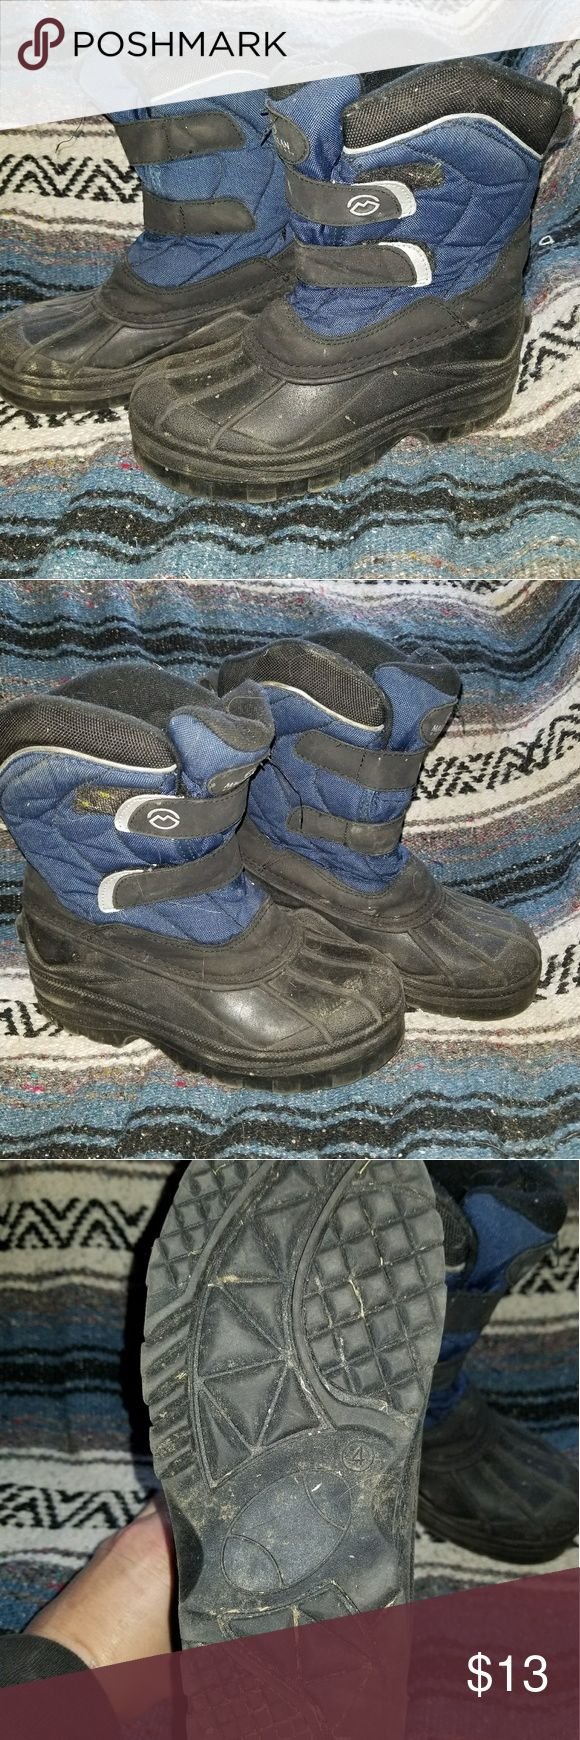 Boys size 4 thinsulate  boots Boys Size 4 thinsulate boots. Keep his feet warm and dry this winter. Good used condition. magellan outdoors Shoes Rain & Snow Boots